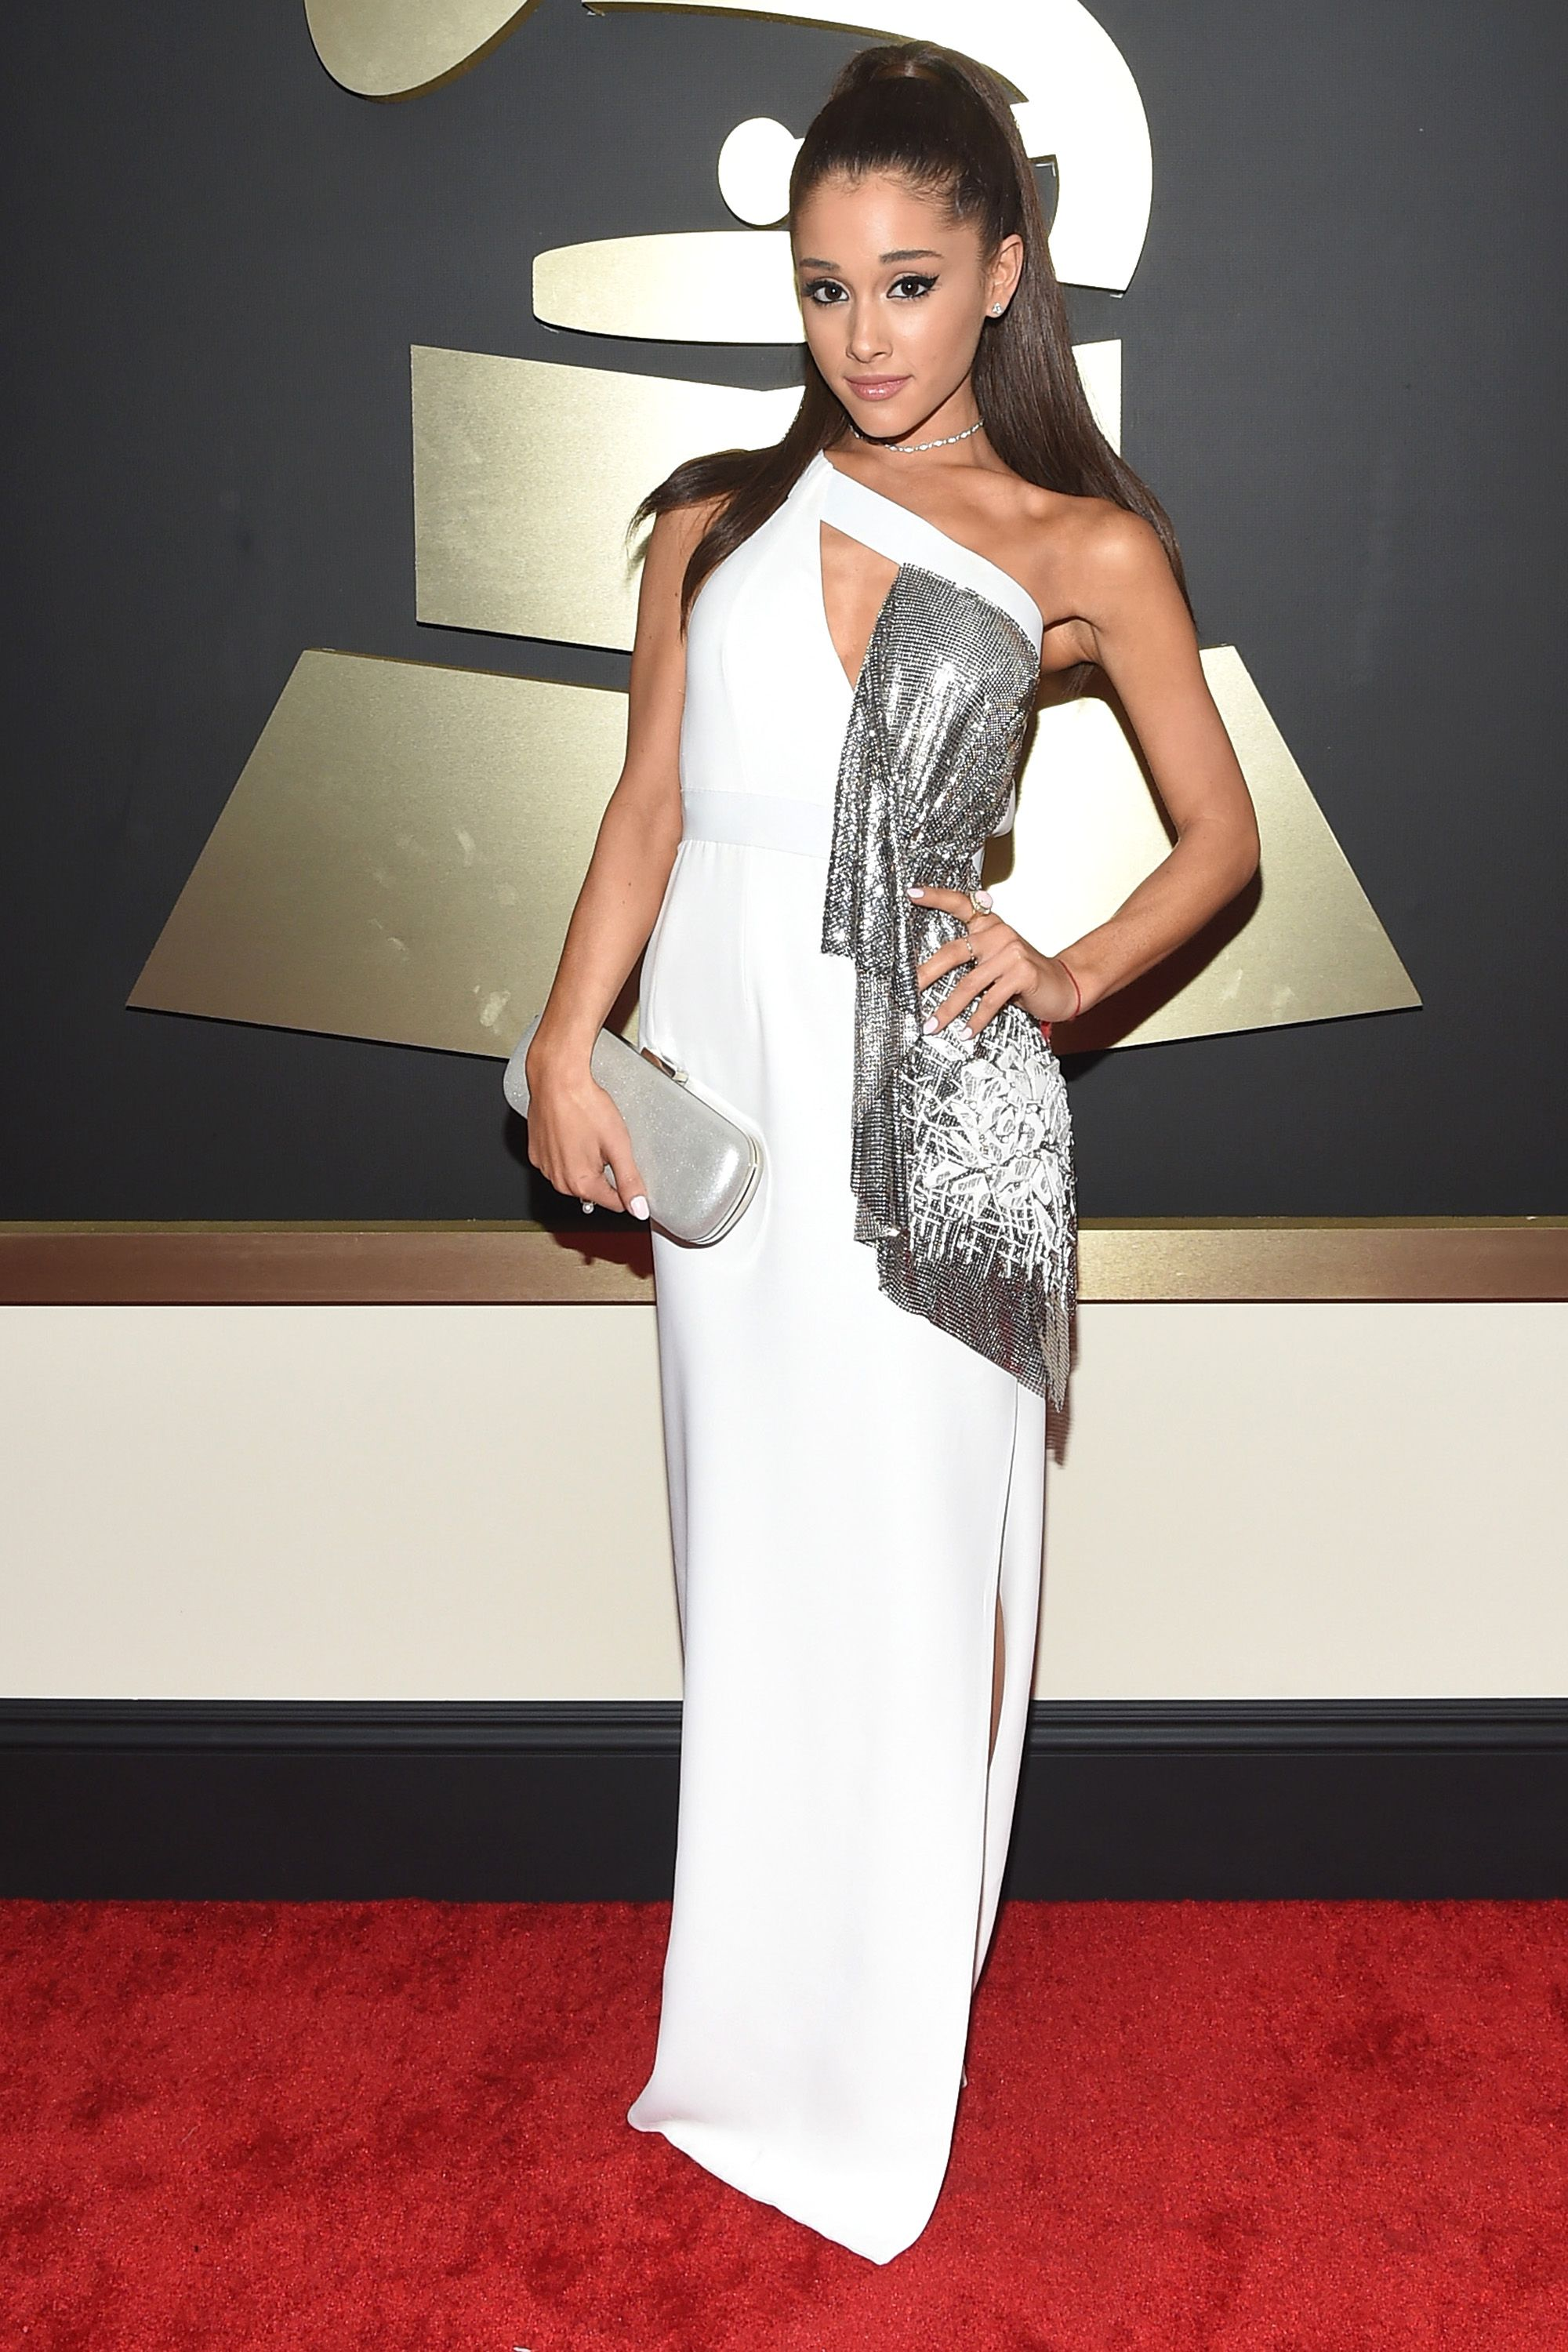 Grammys Red Carpet 2015 - Pictures from 2015 Grammys Red Carpet